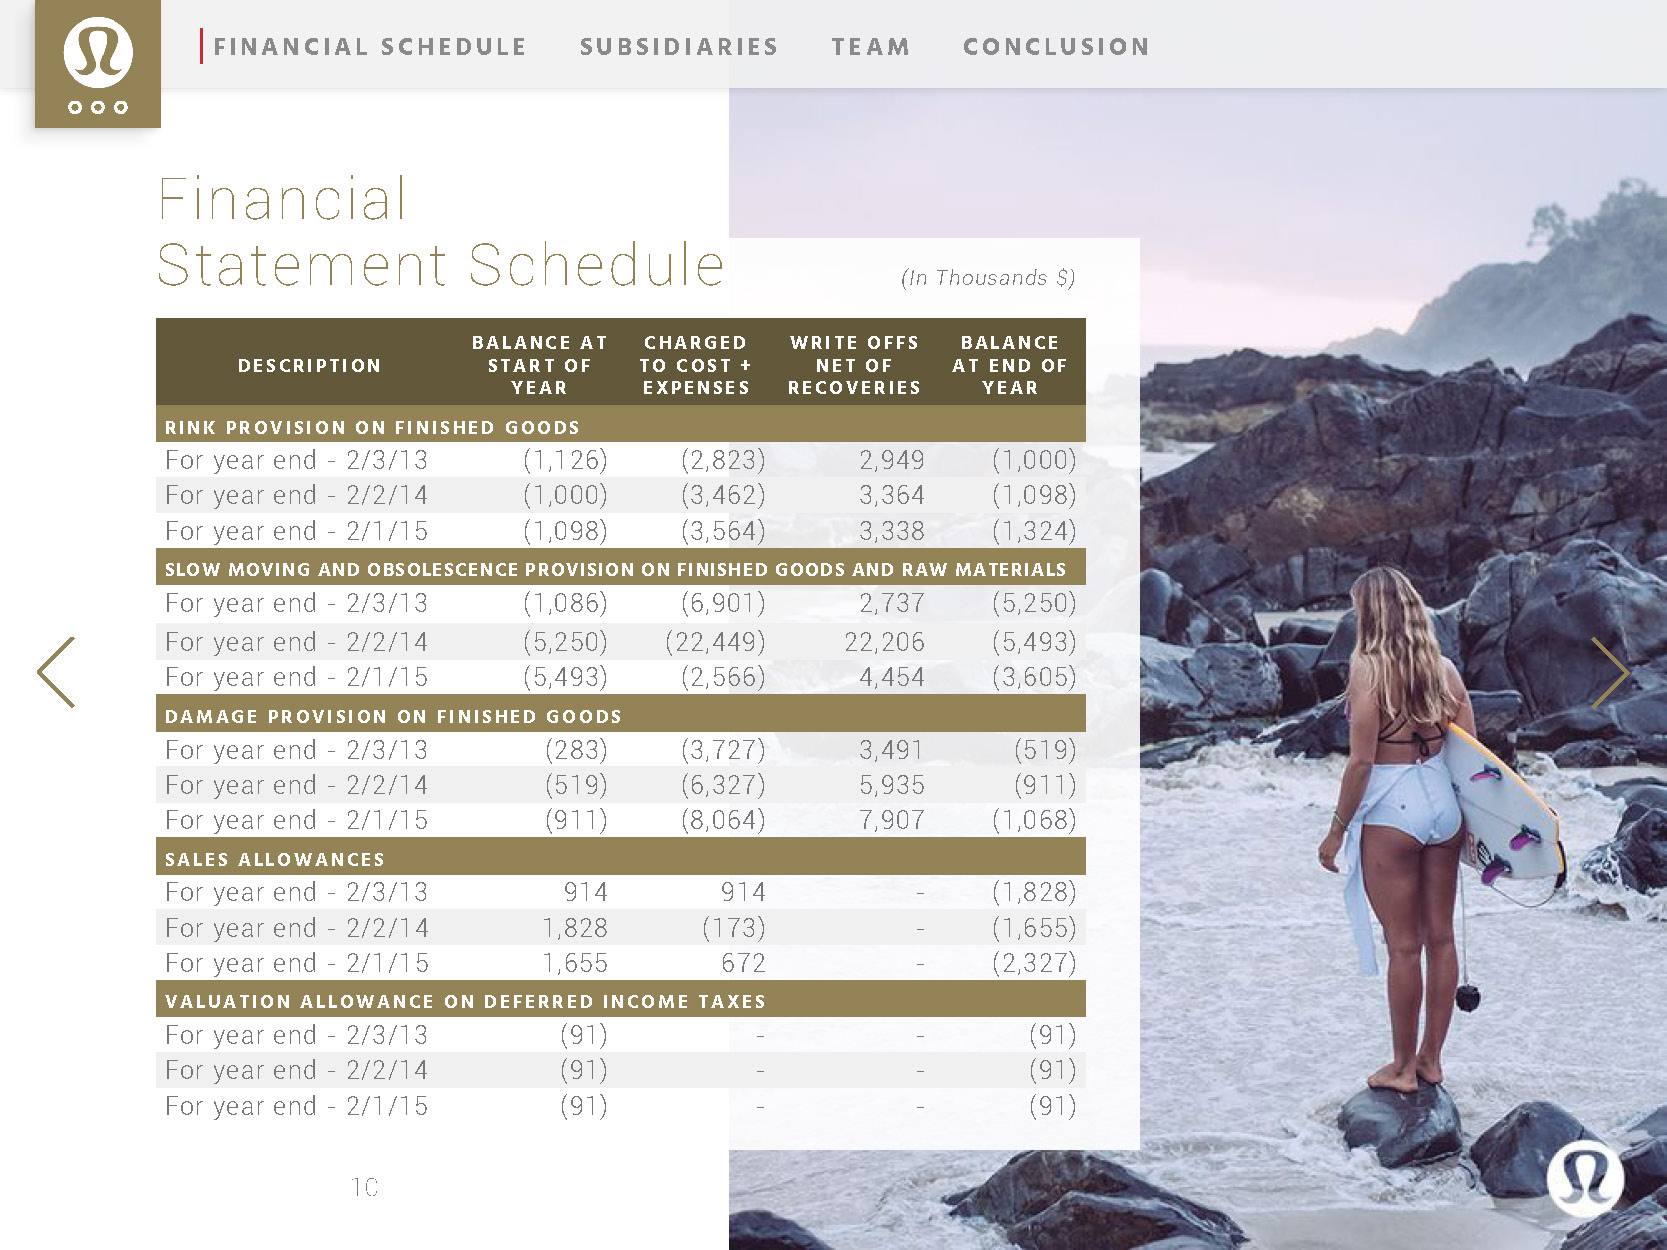 bt-lululemon-annual-report_Page_10.jpg